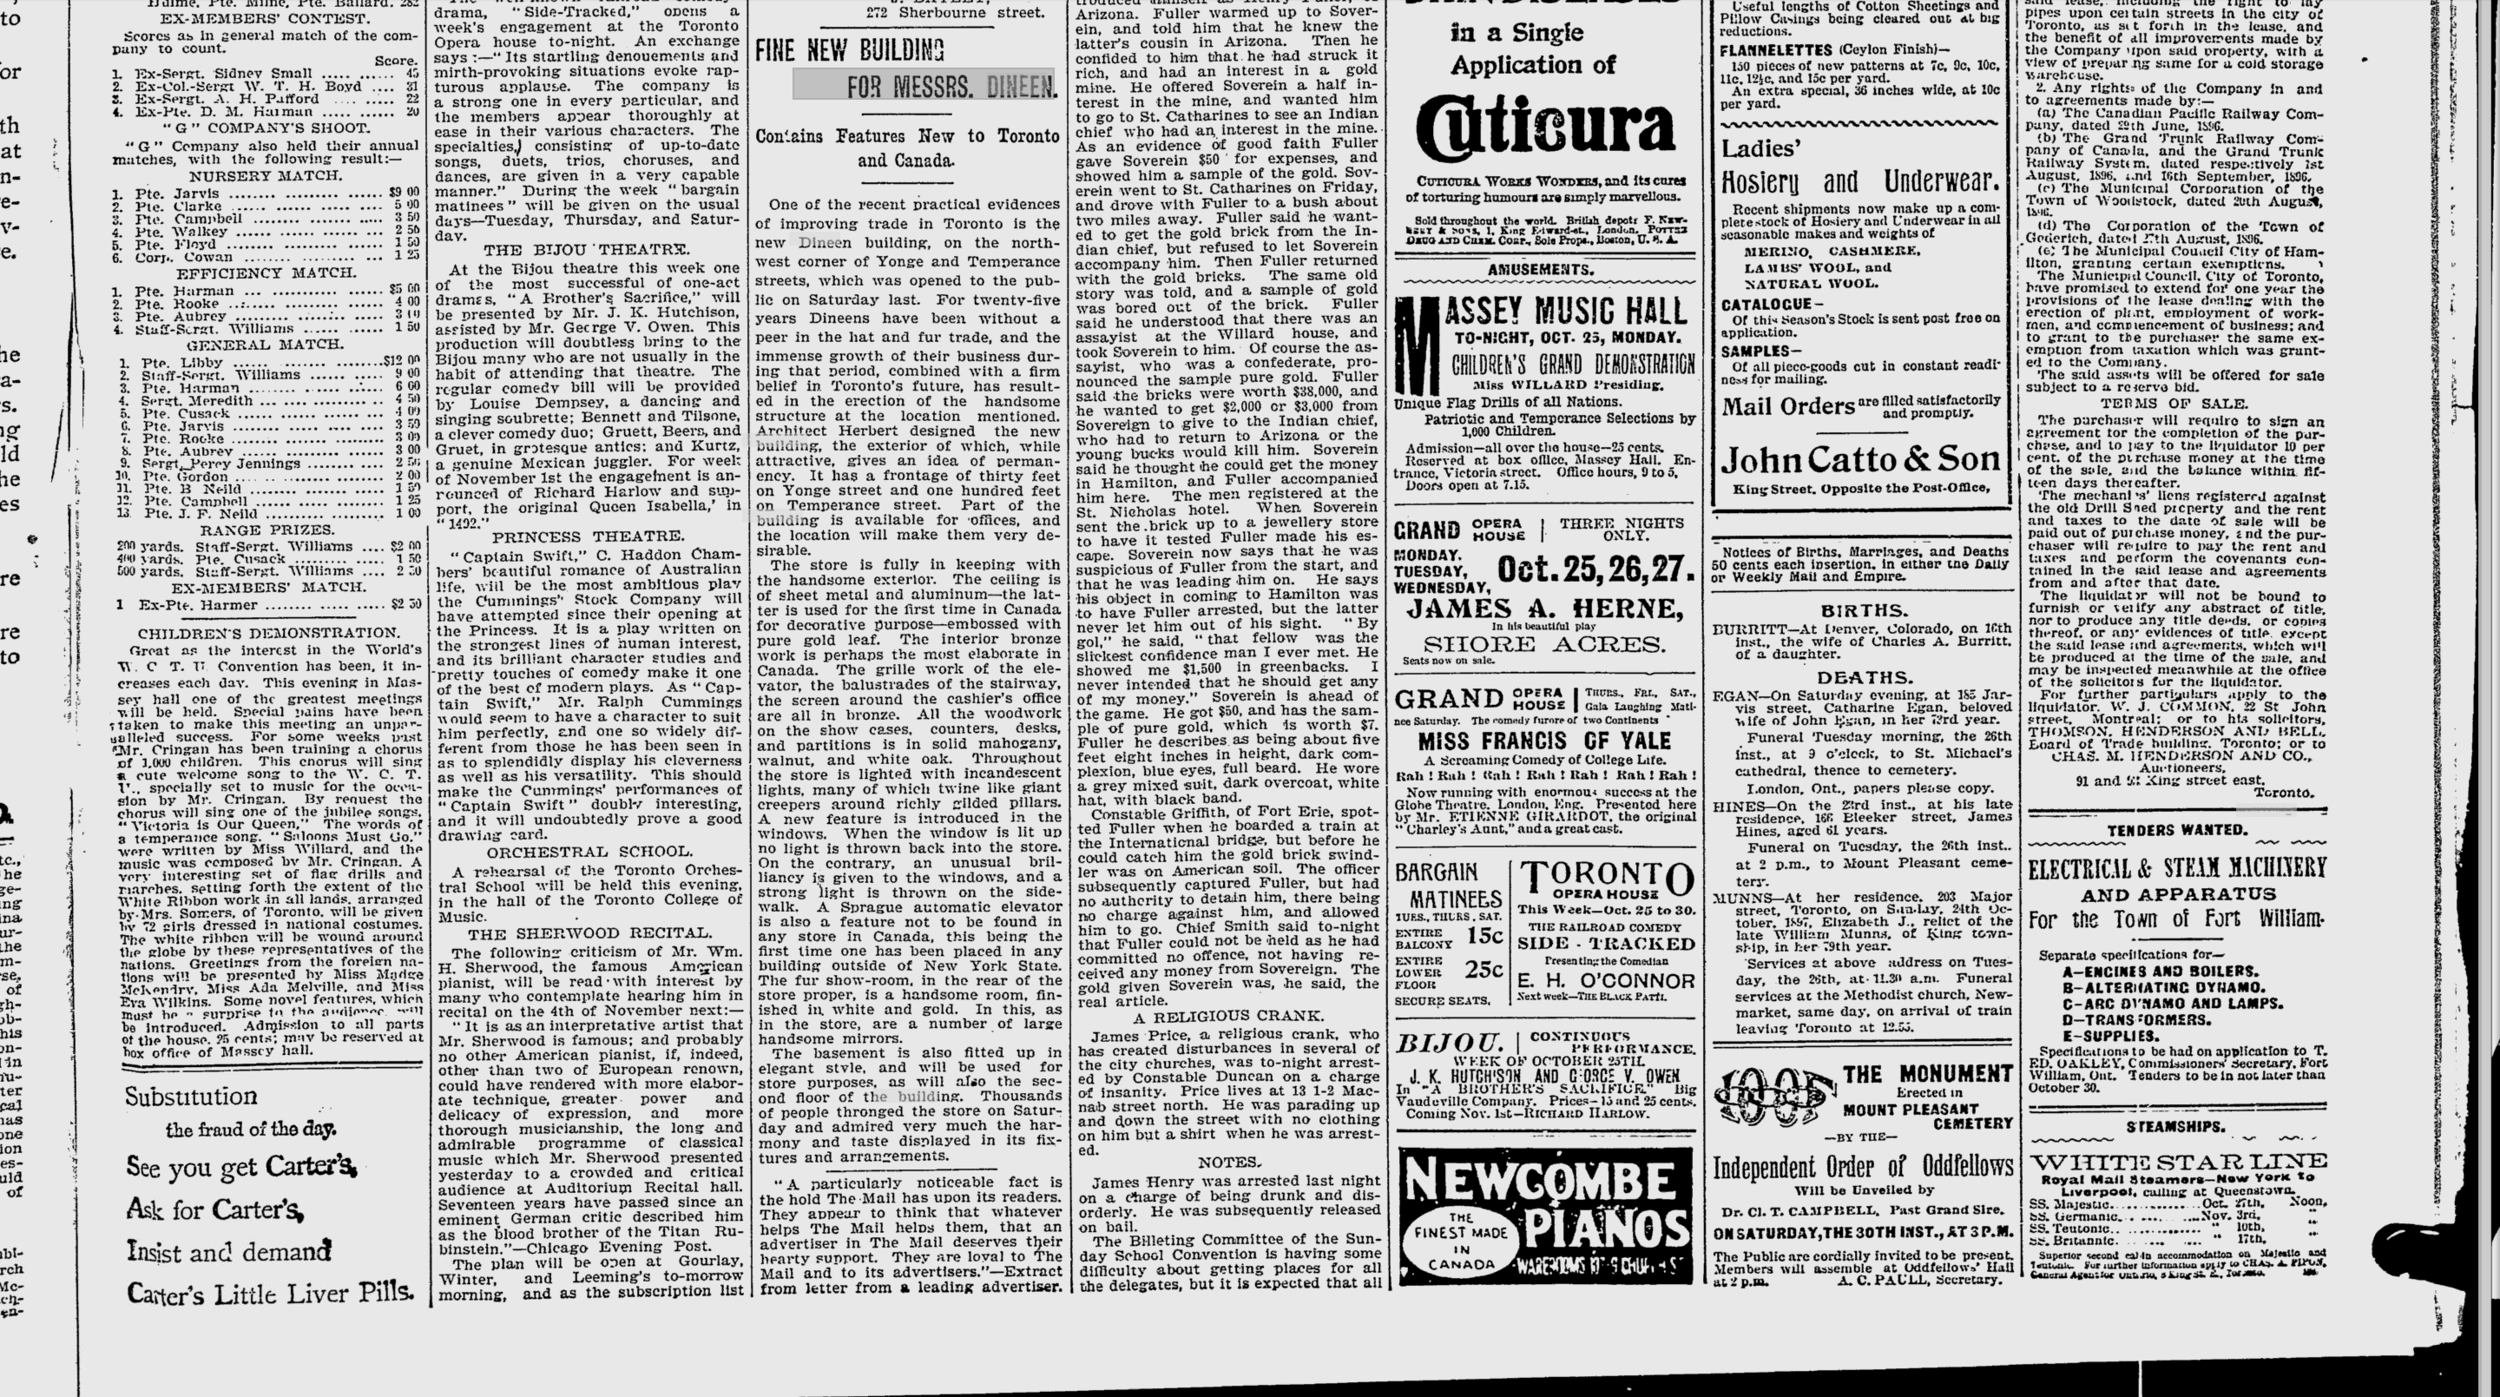 Daily Mail and Empire - Oct 25, 1897.